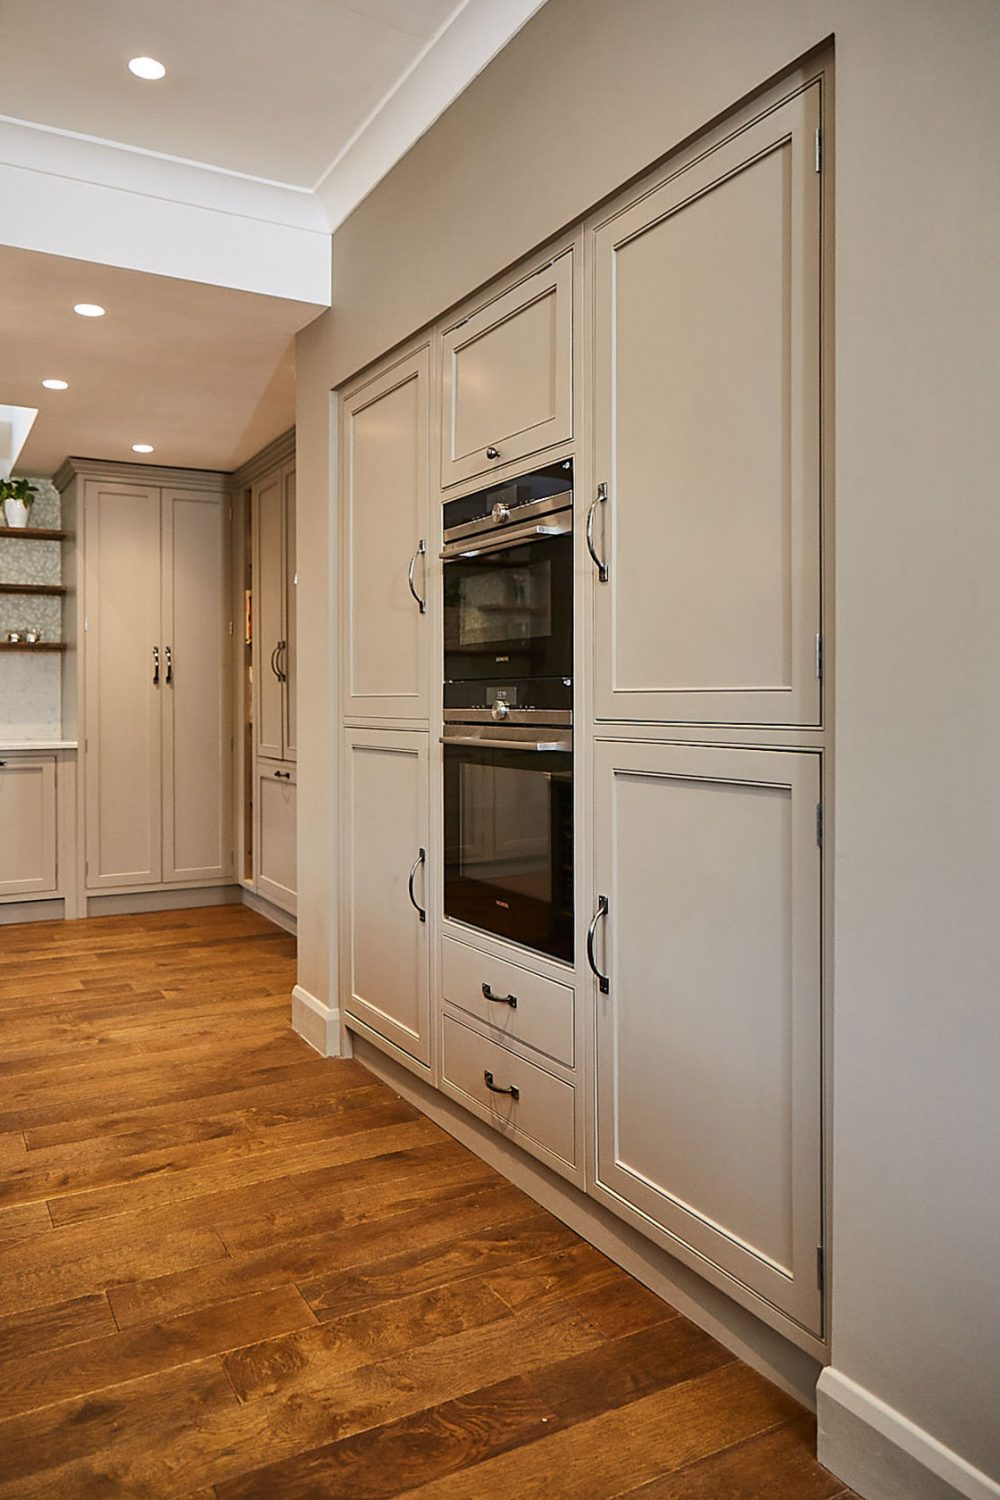 Integrated eye level Siemens oven in traditional painted cabinet